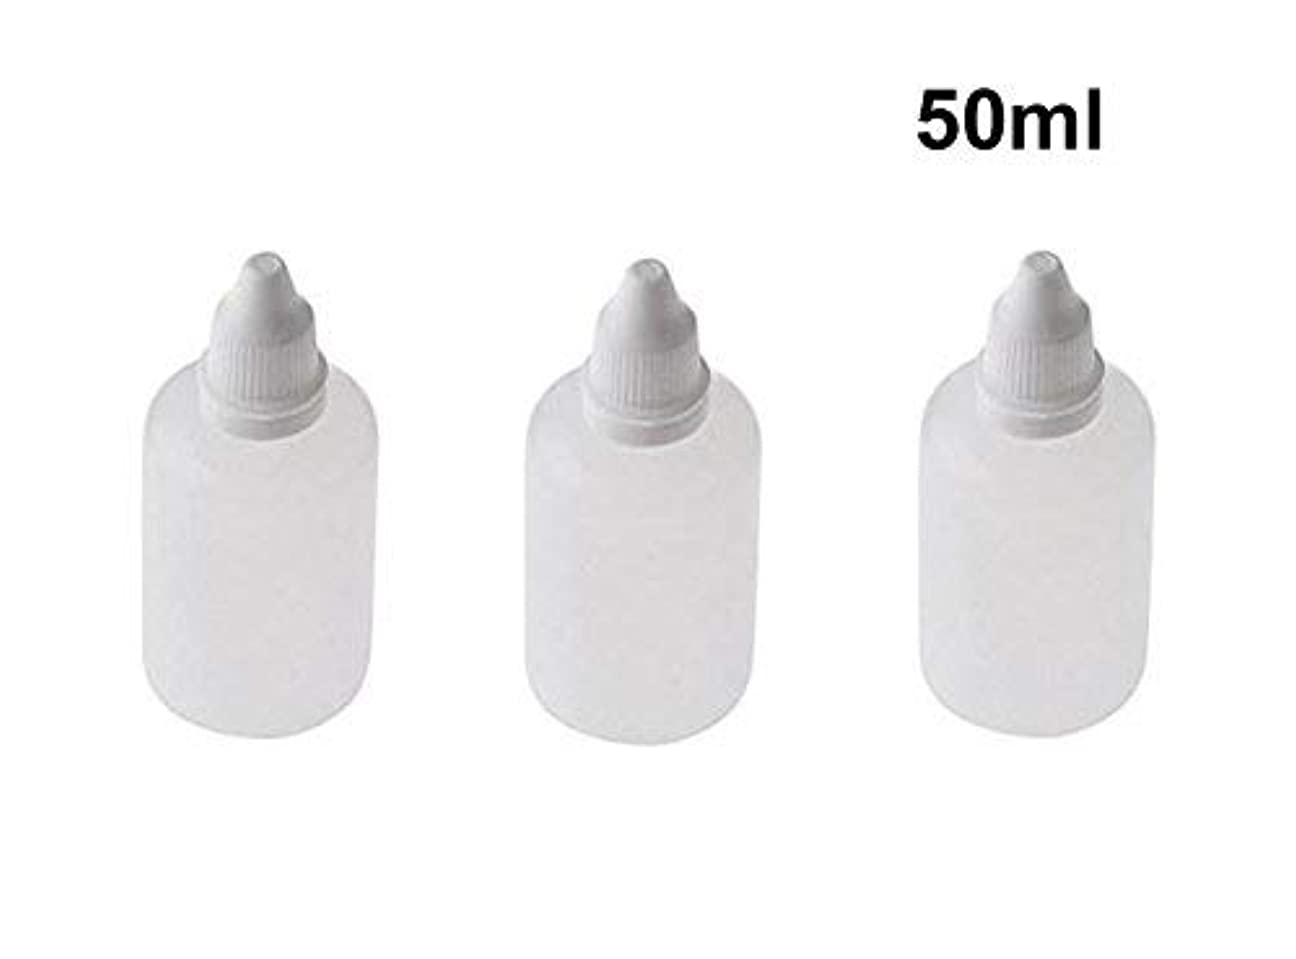 10 Pieces Empty Refillable Plastic Squeezable Dropper Bottles Portable Eye Liquid Vial with Screw Caps and Plugs...